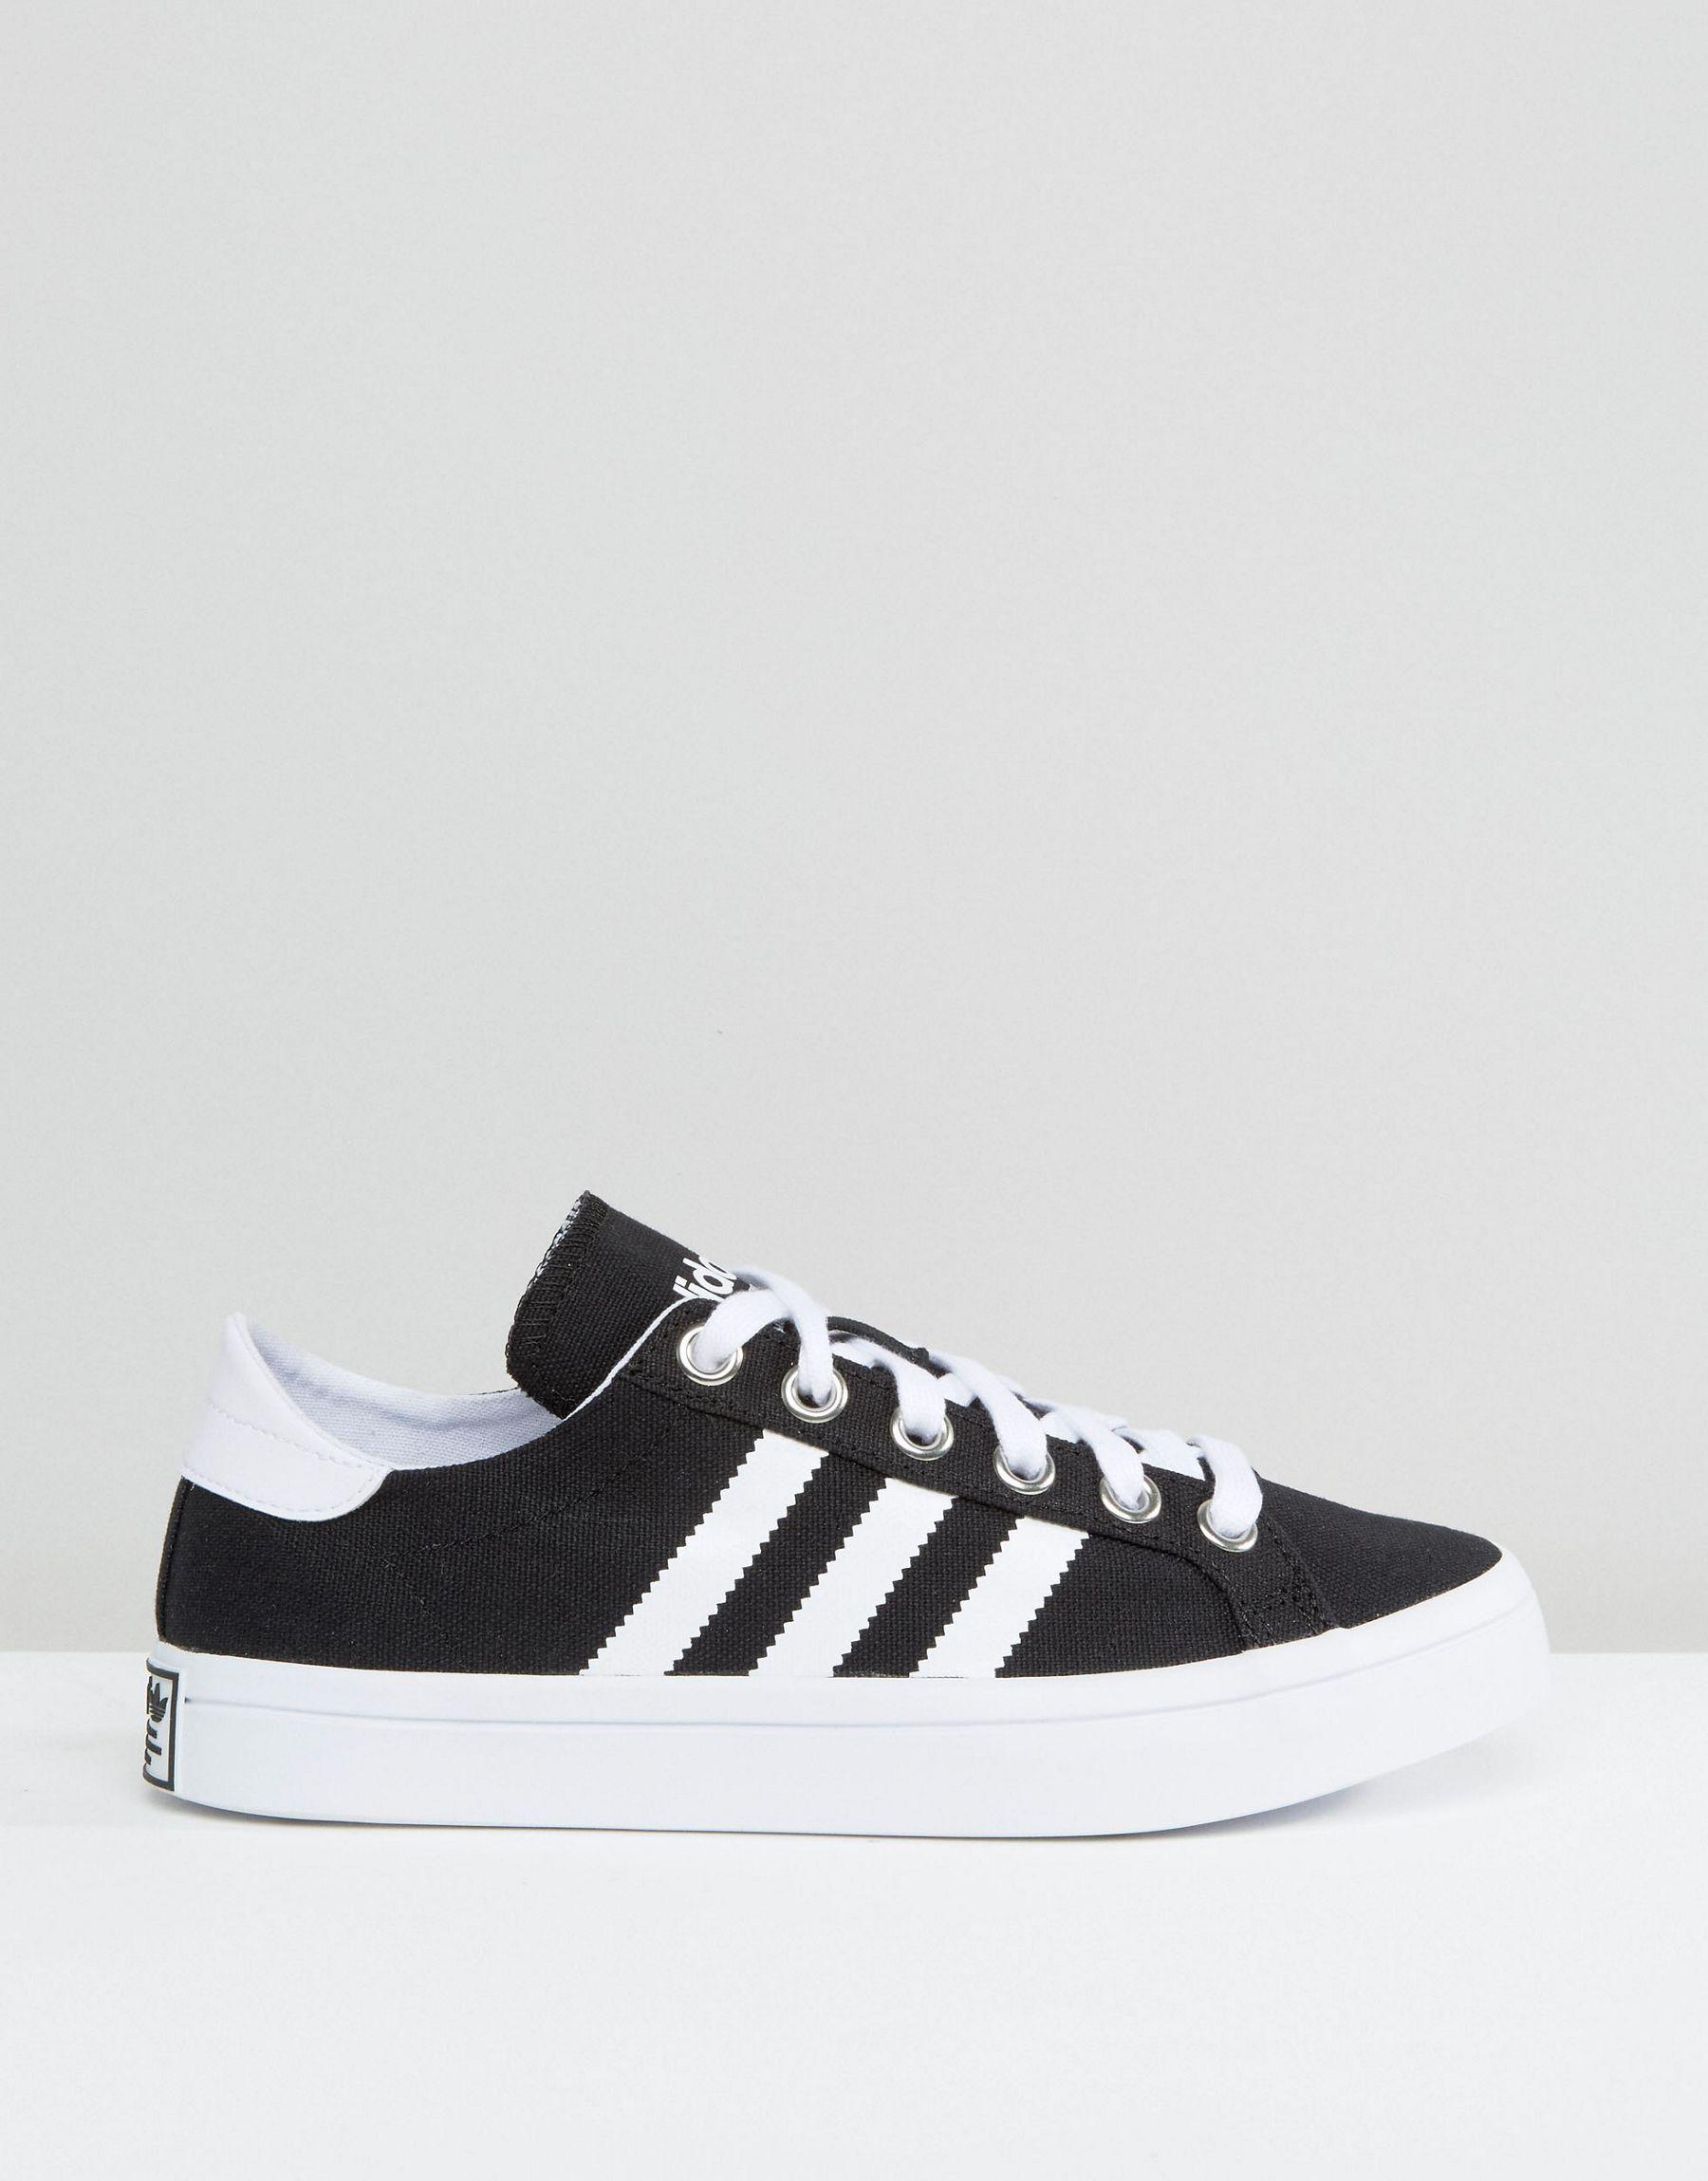 adidas originals black and white court vantage sneakers, OFF 74%,Buy!